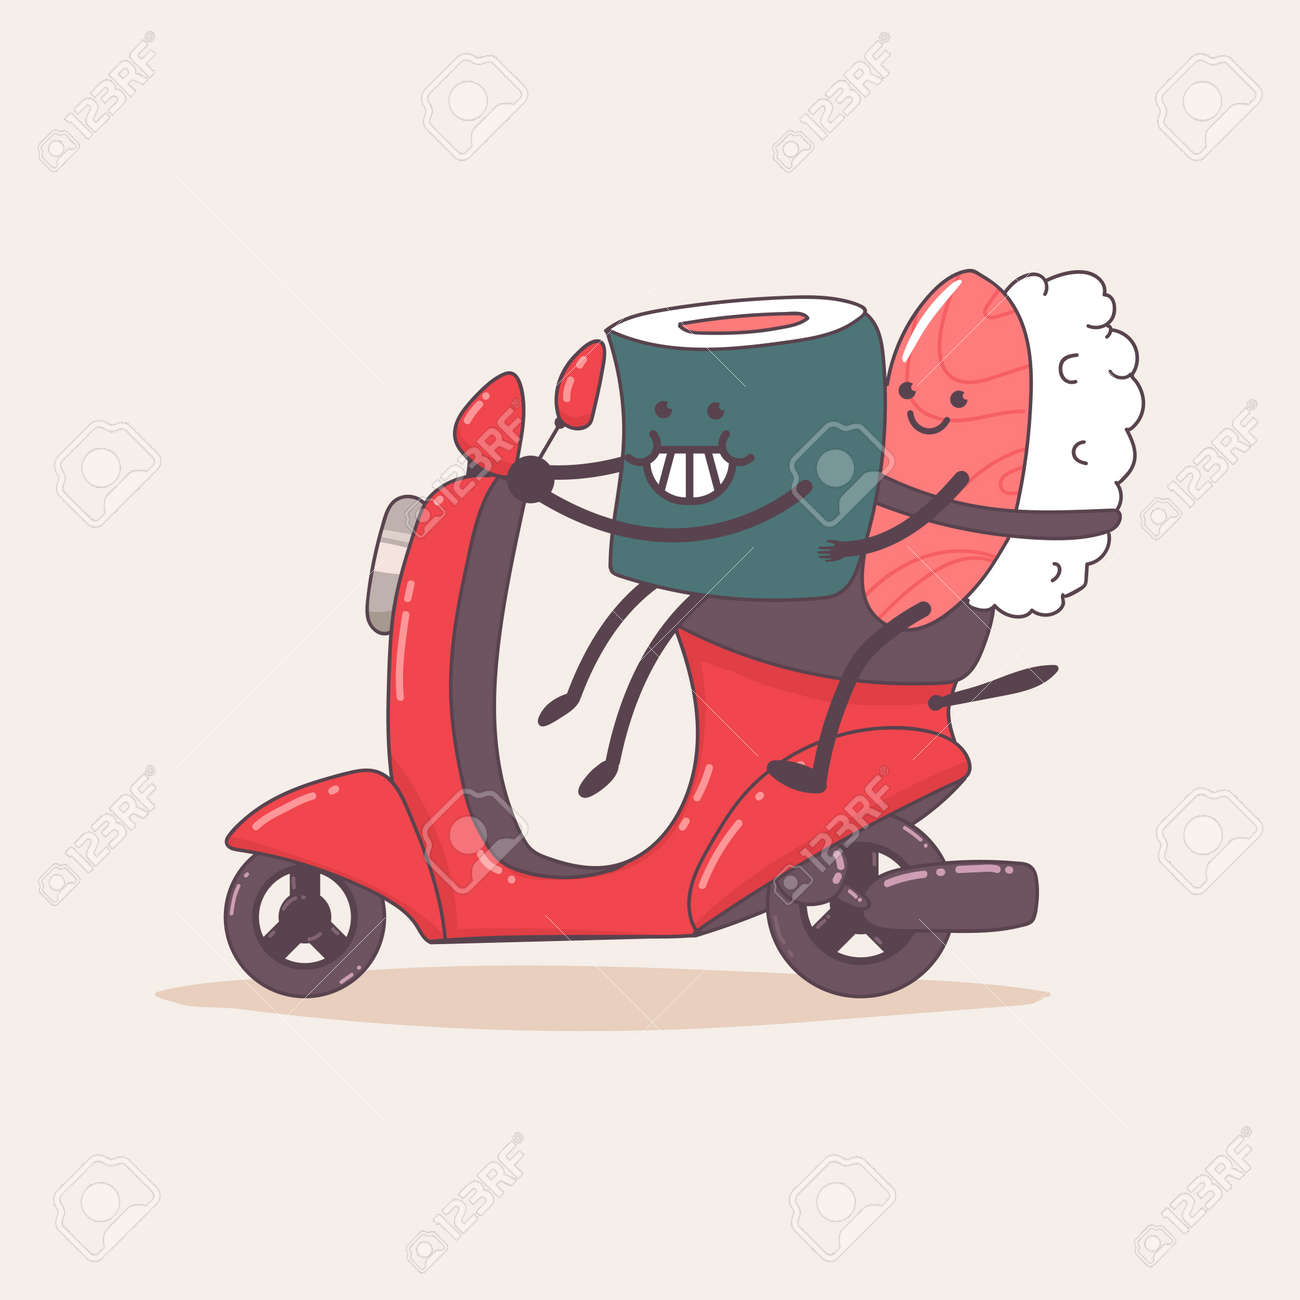 Sushi delivery. Cute food courier character on the moped. Vector cartoon illustration isolated on background. - 172749455